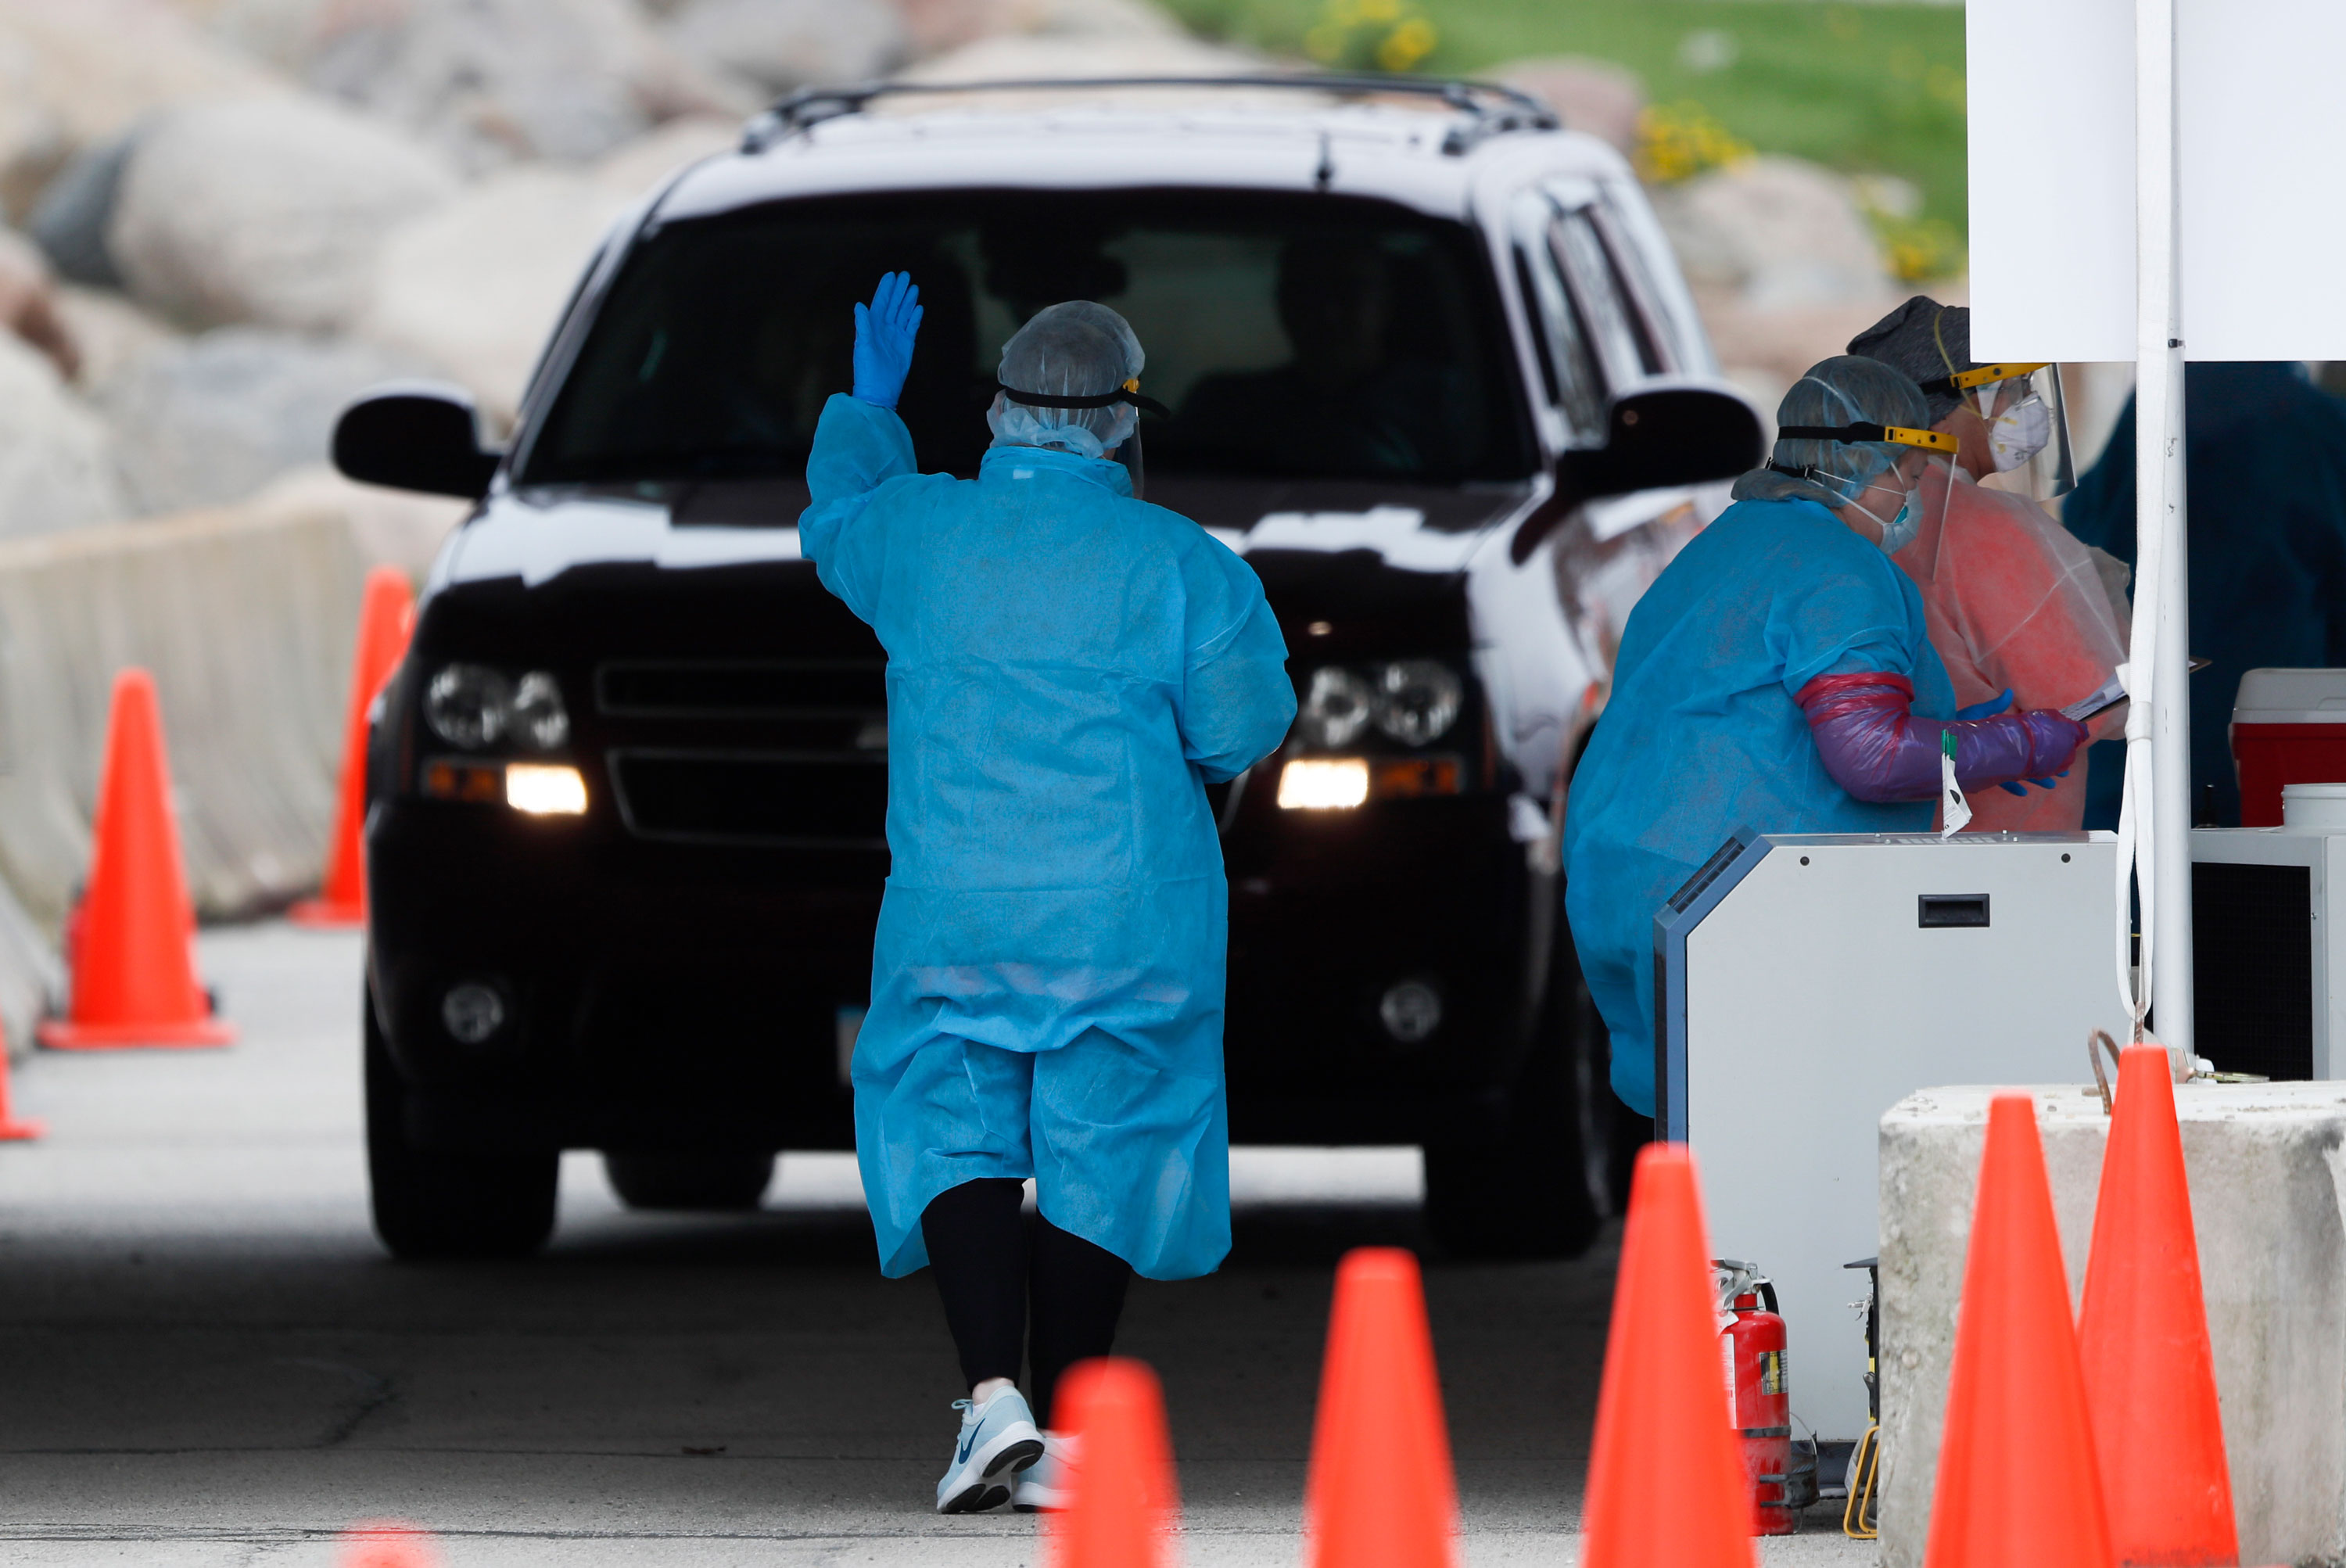 A medical worker directs a local resident at a drive-thru COVID-19 testing site in Waterloo, Iowa, on May 1.